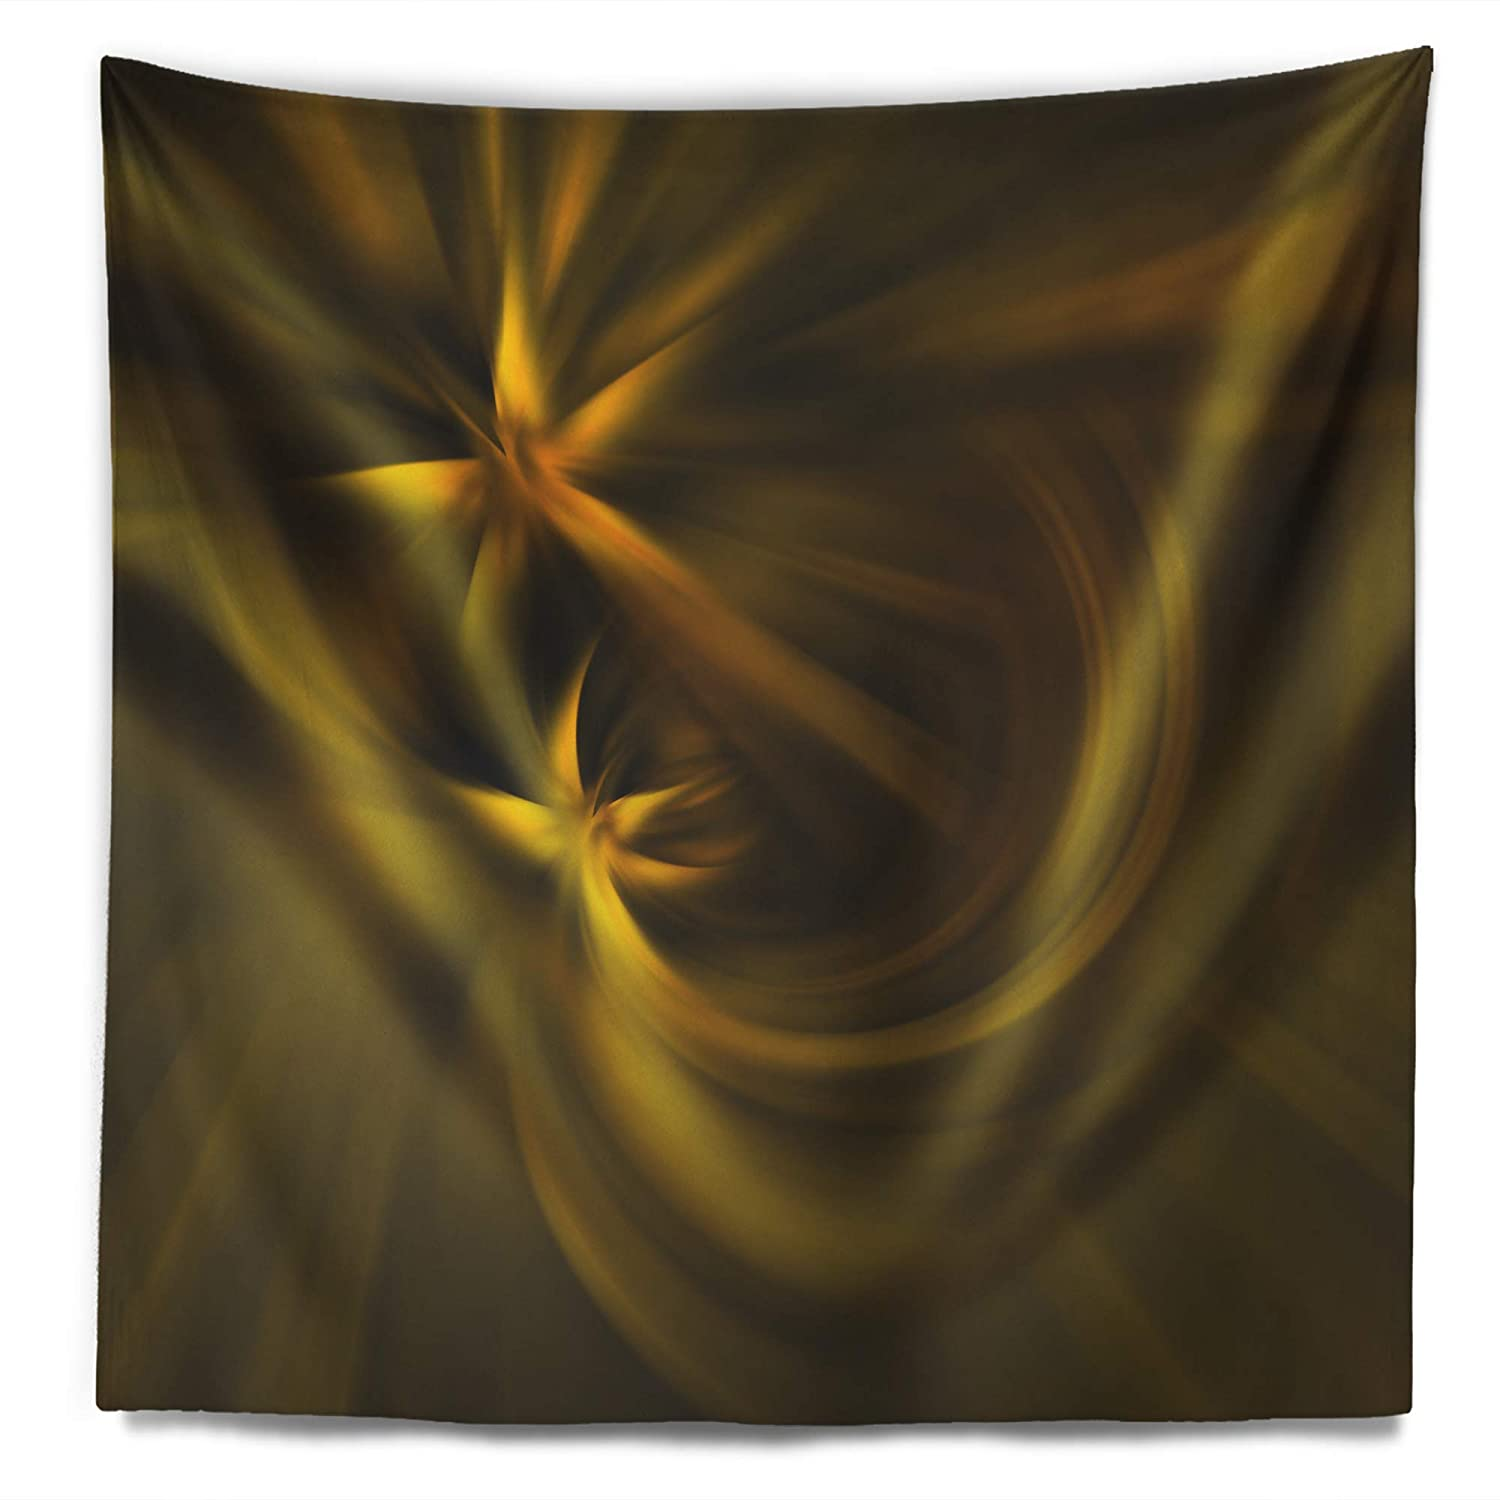 Designart TAP8183-32-39  Play of Golden Stars Abstract Blanket D/écor Art for Home and Office Wall Tapestry Medium Created On Lightweight Polyester Fabric x 39 in 32 in